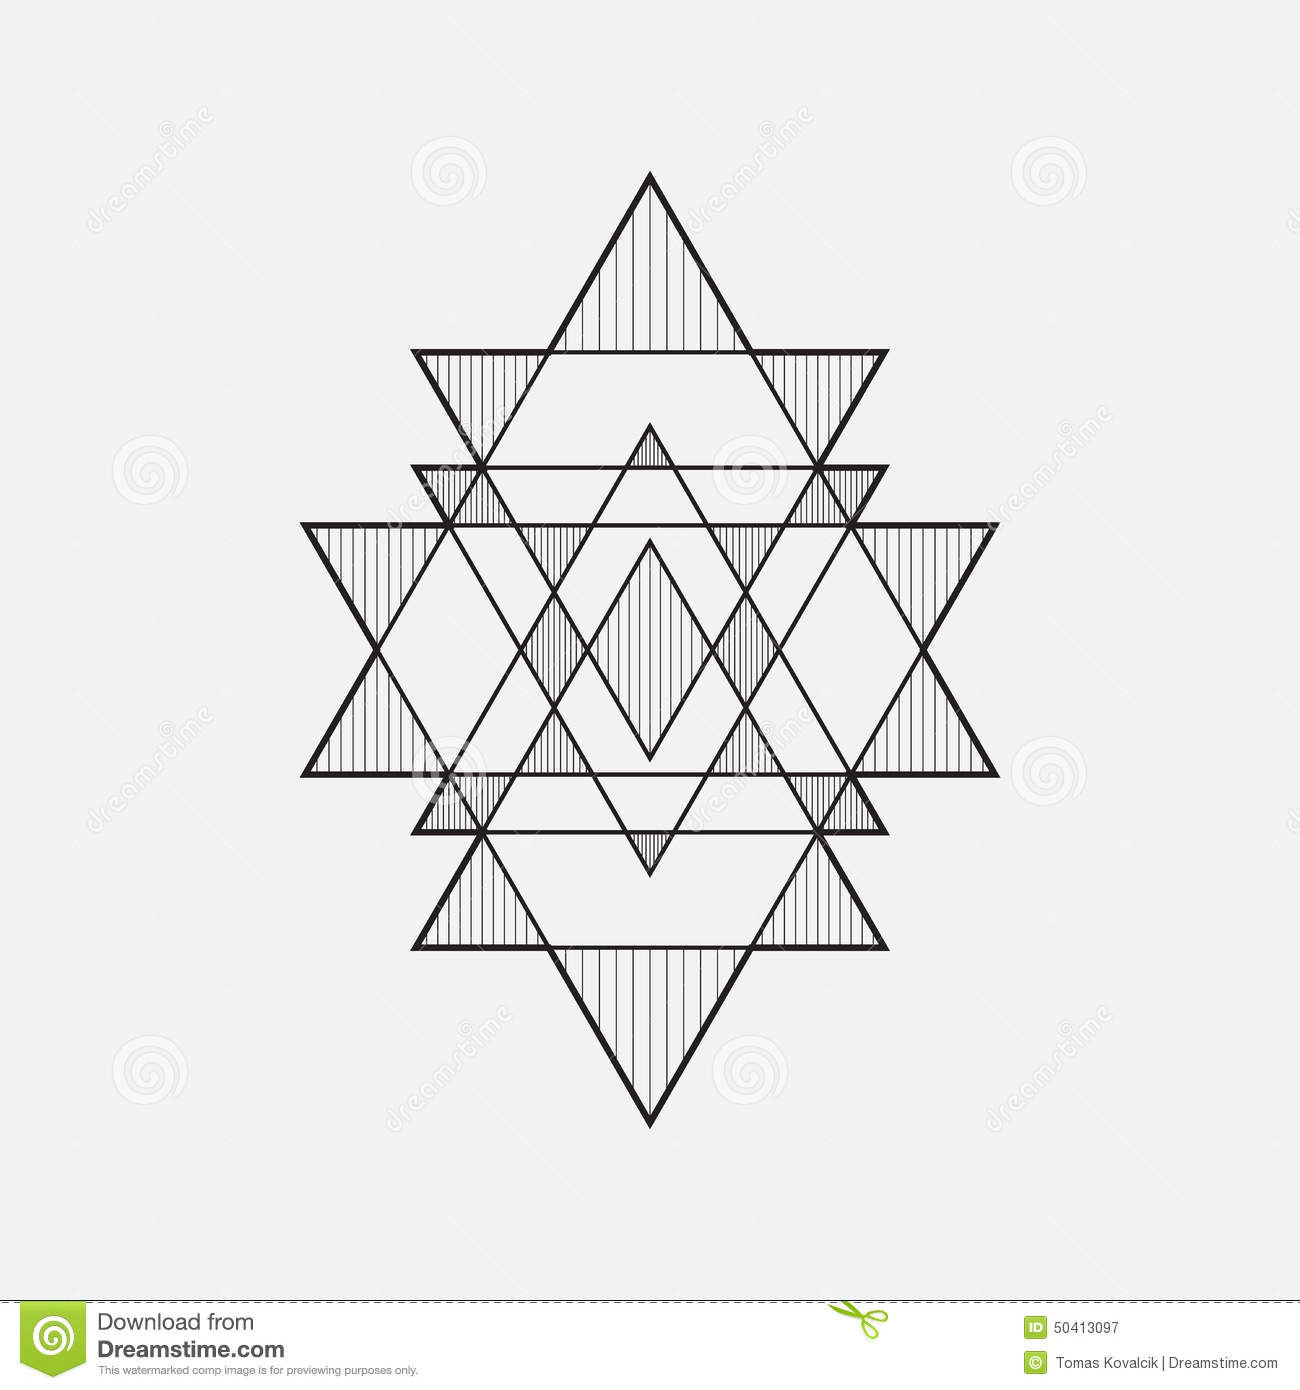 3d Shape Line Drawings : Geometric shapes stock vector illustration of connection